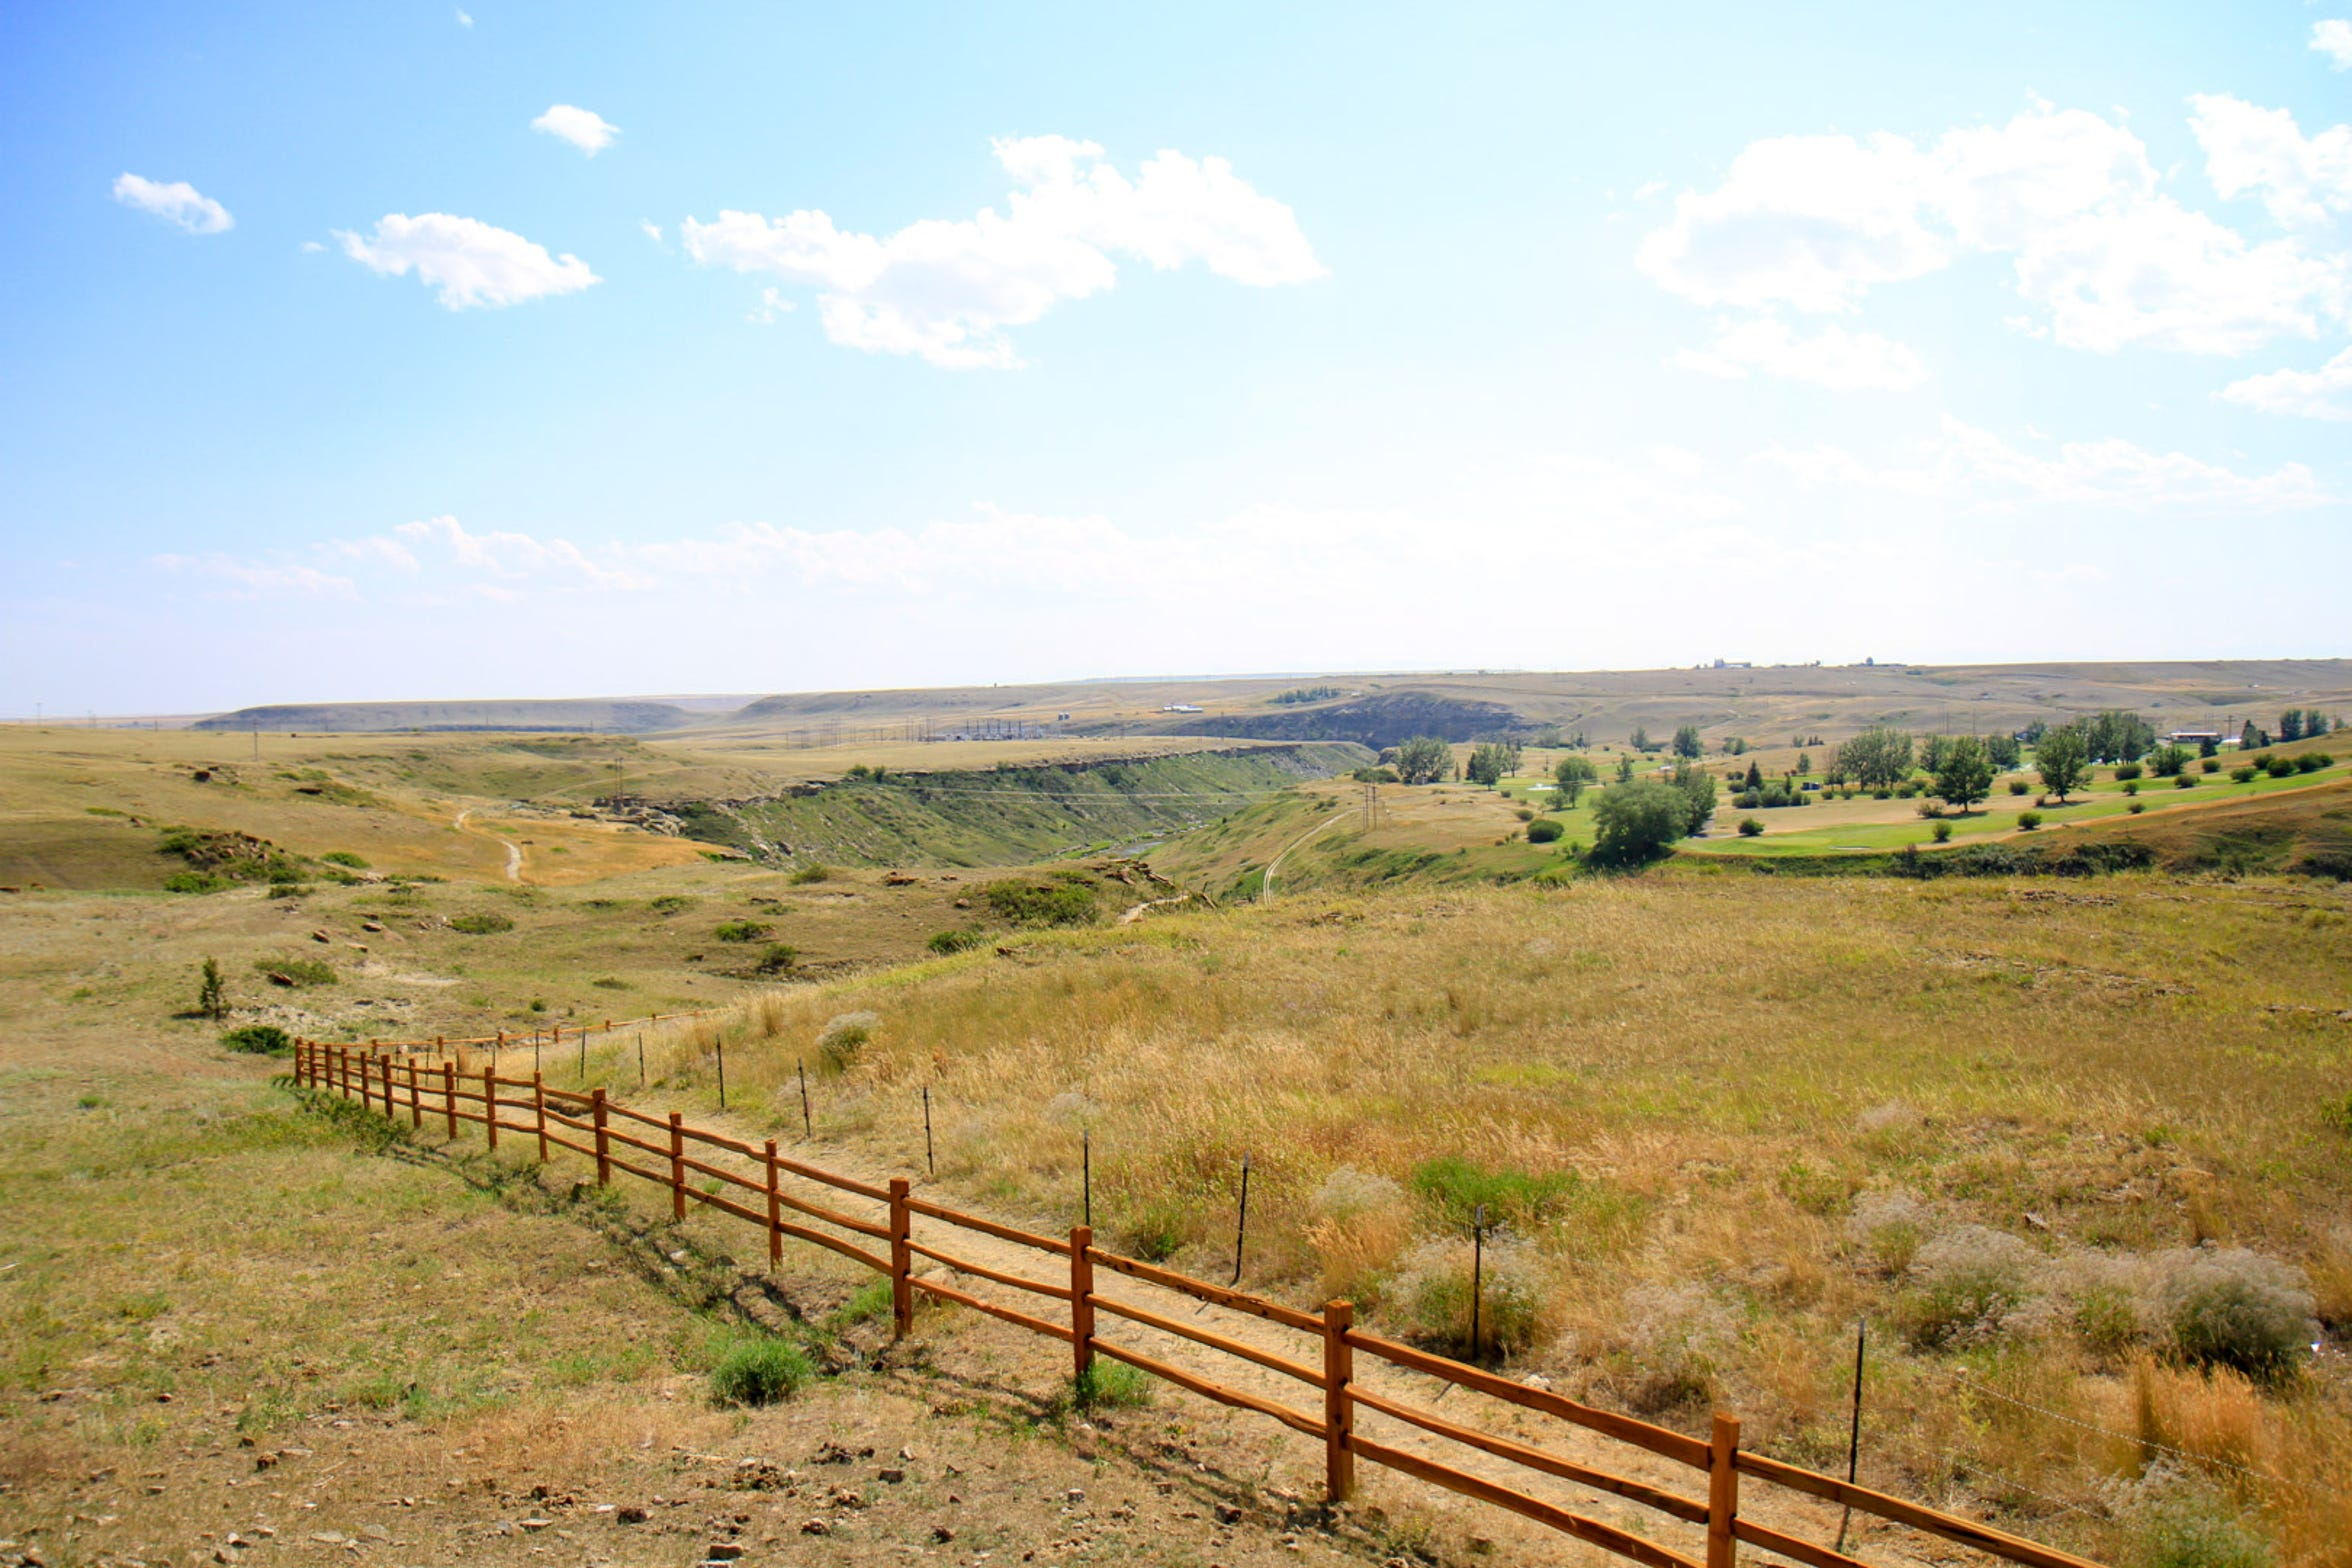 The view of the Coulee Trail located south of Cut Bank along the Cut Bank Creek Coulee